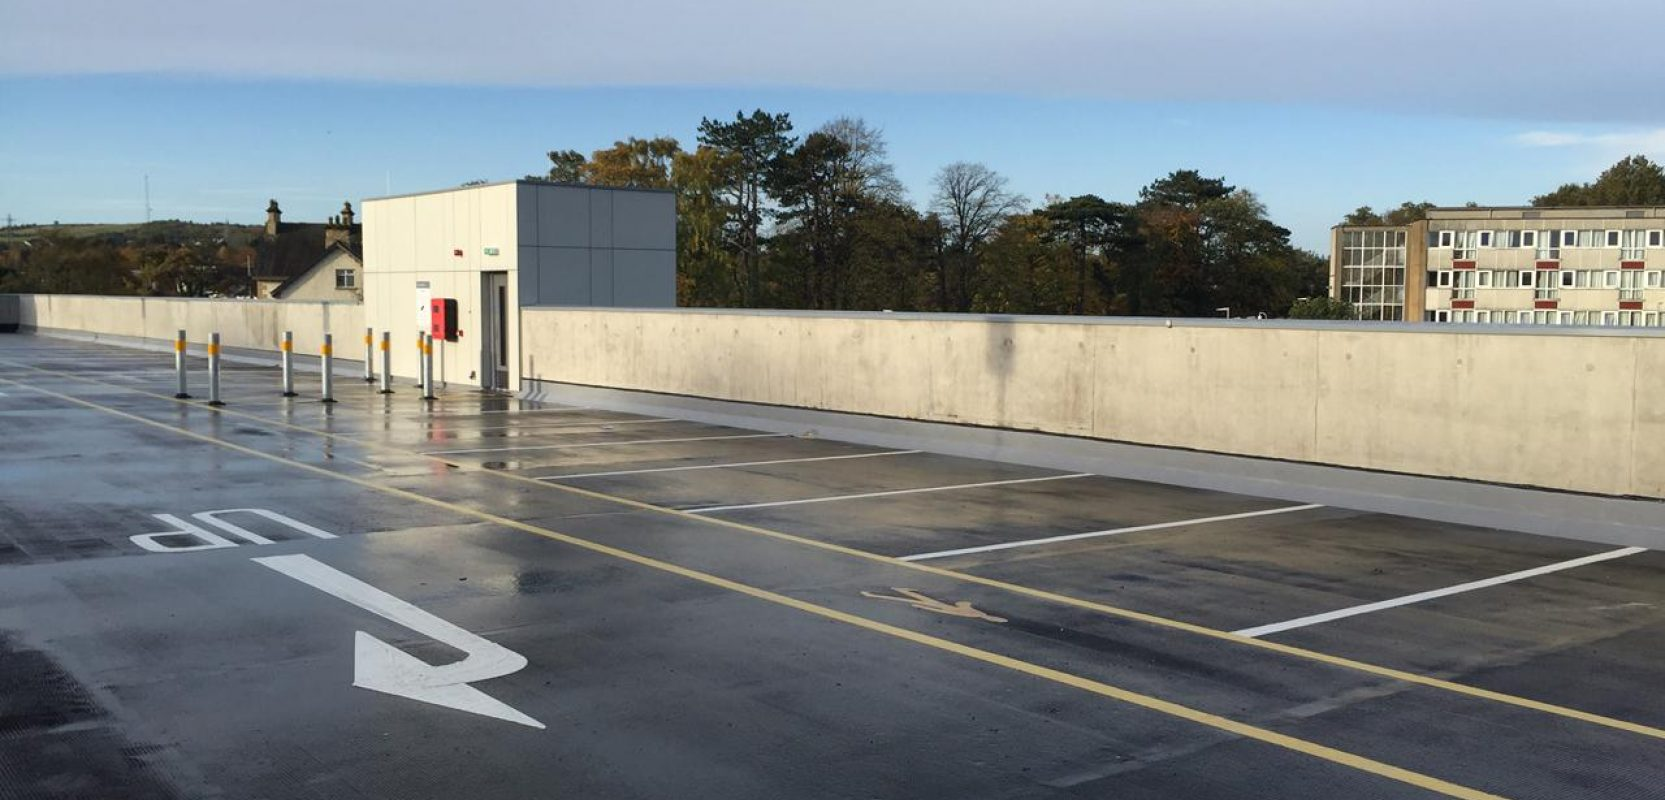 Images of Altnagelvin Hospital Carpark project